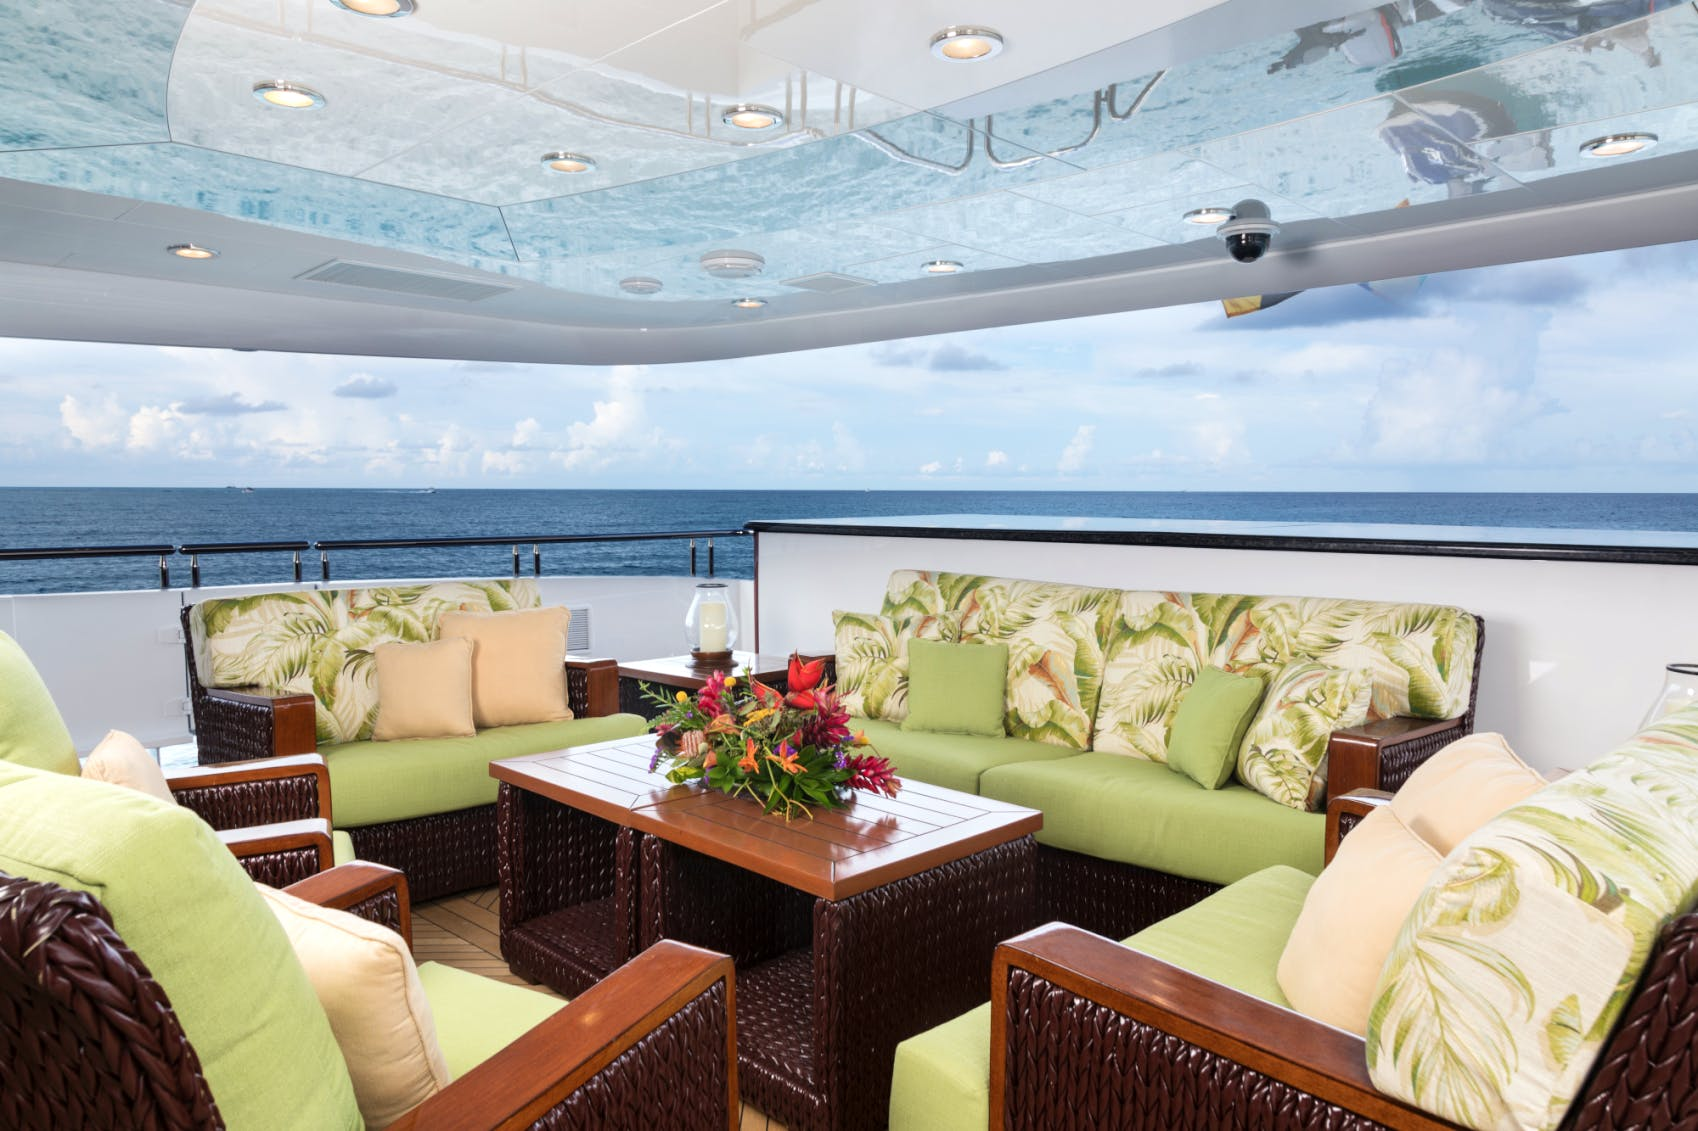 Seasonal Rates for AMARULA SUN Private Luxury Yacht For Charter